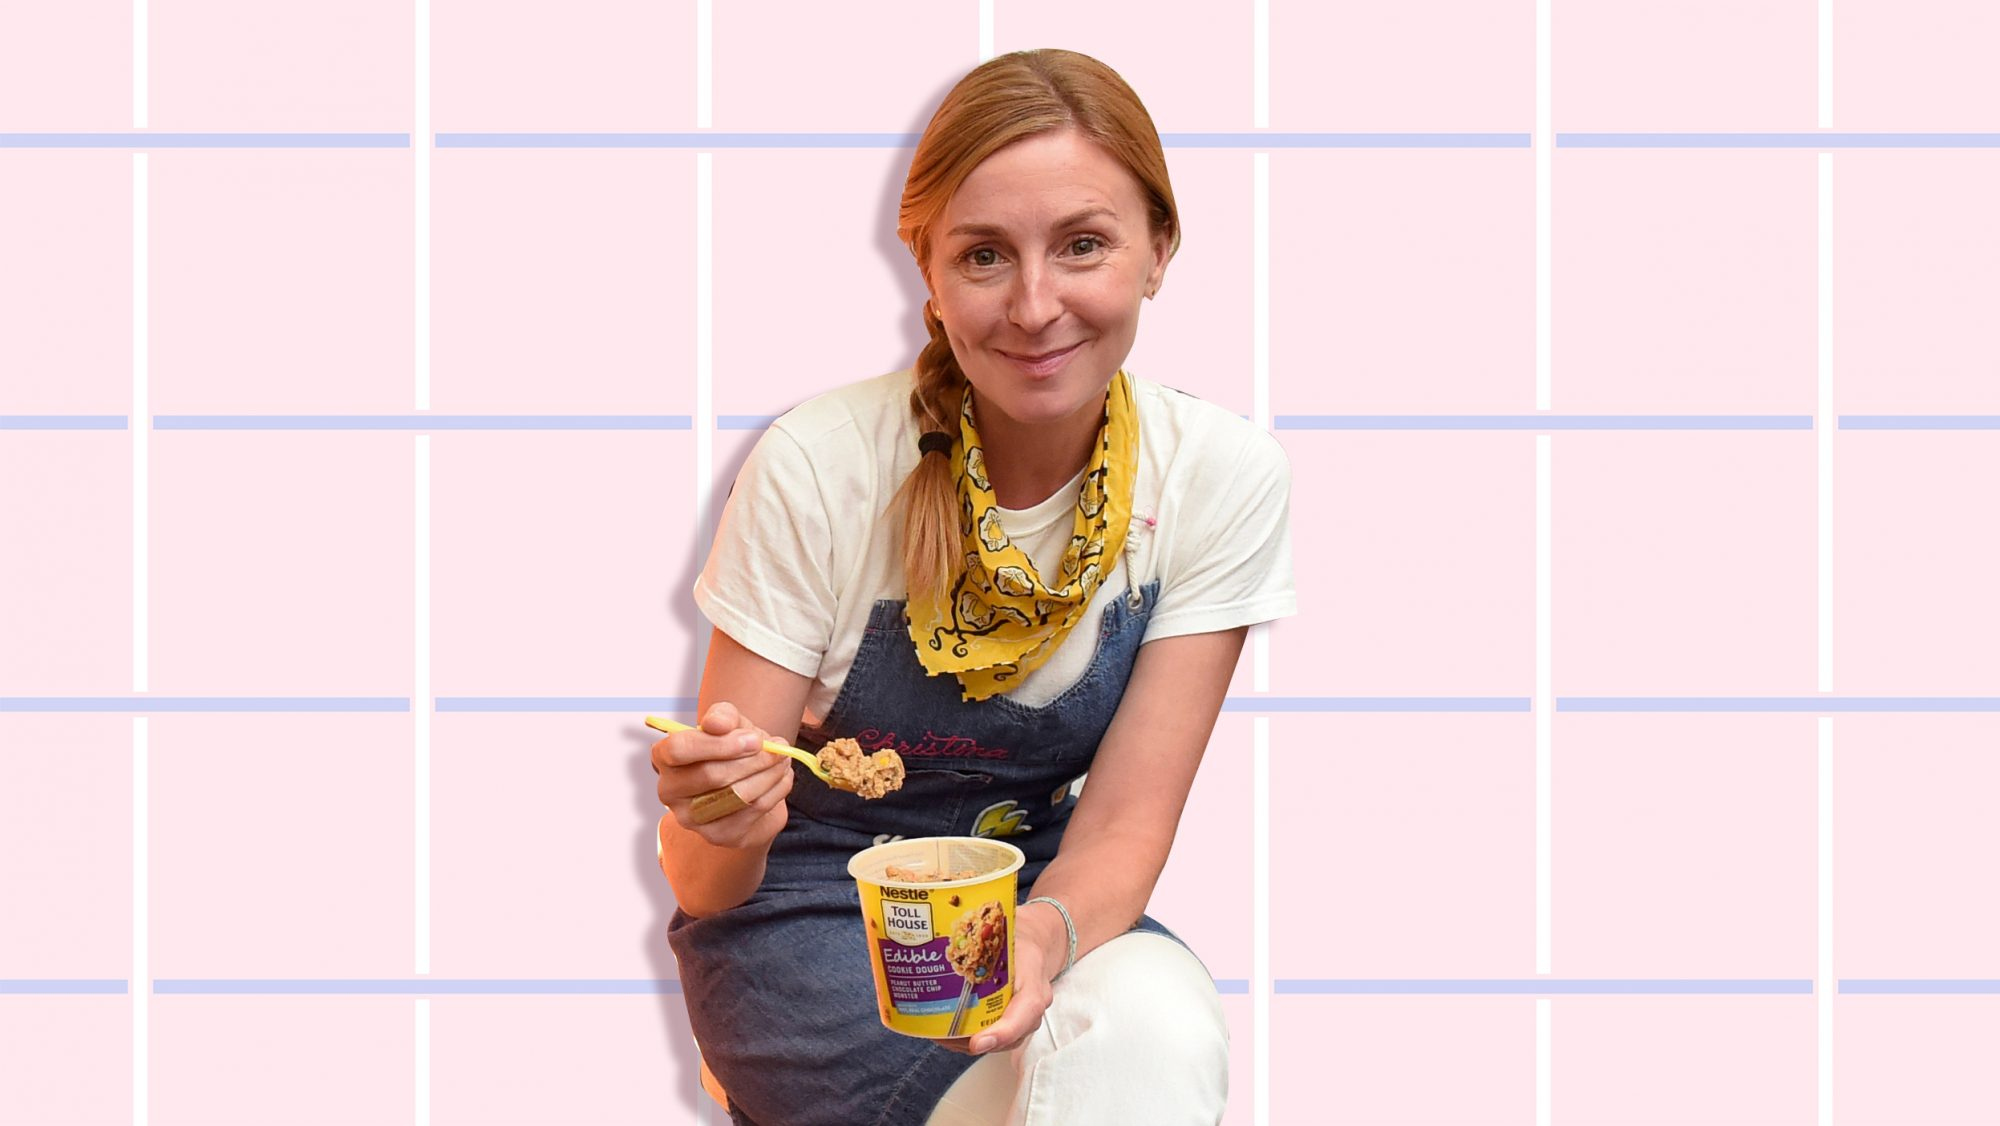 Christina Tosi's baking tips and hacks